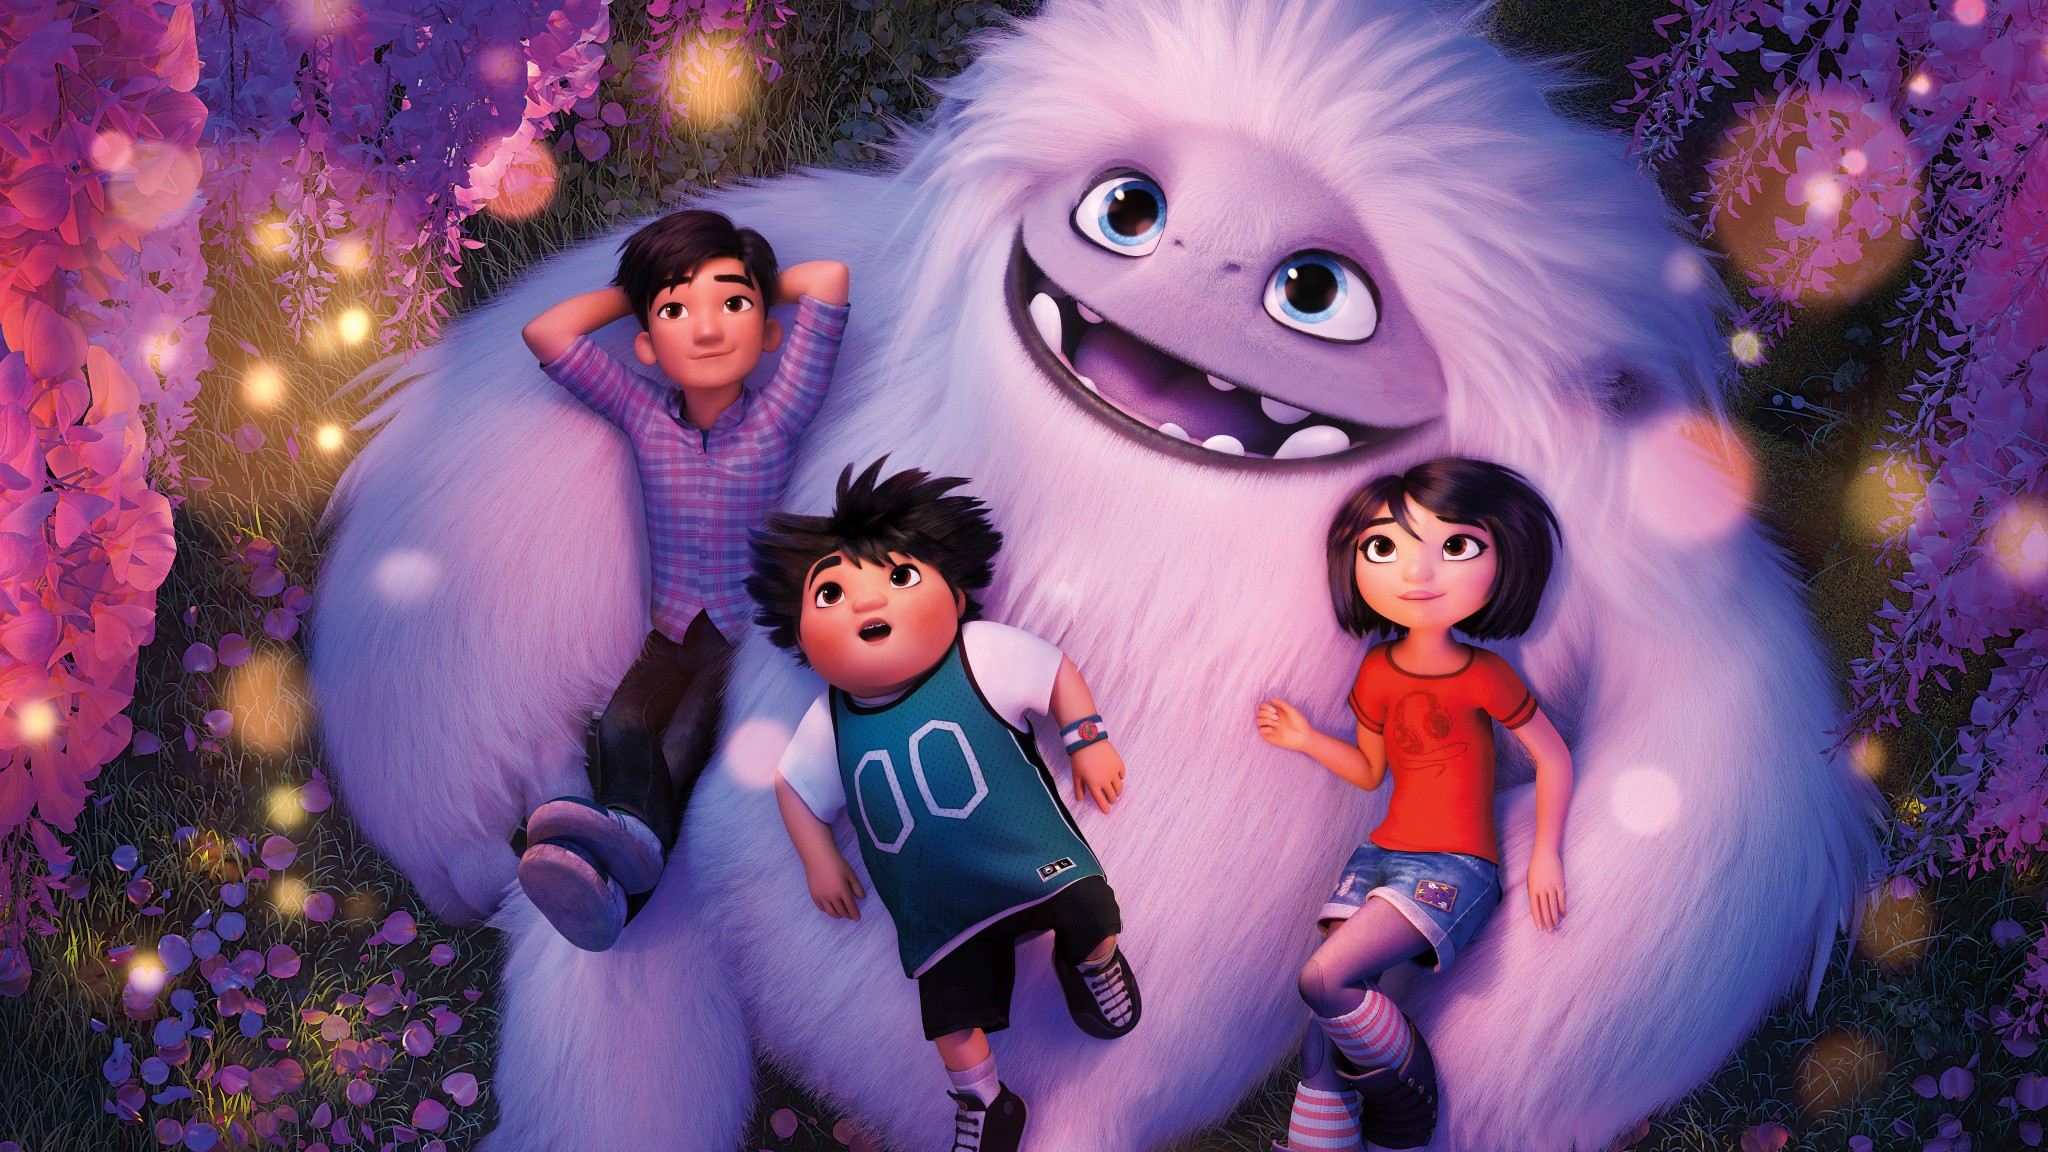 Free Full Cartoon Movies top movies 2019: abominable ^google.drive^ watch online free